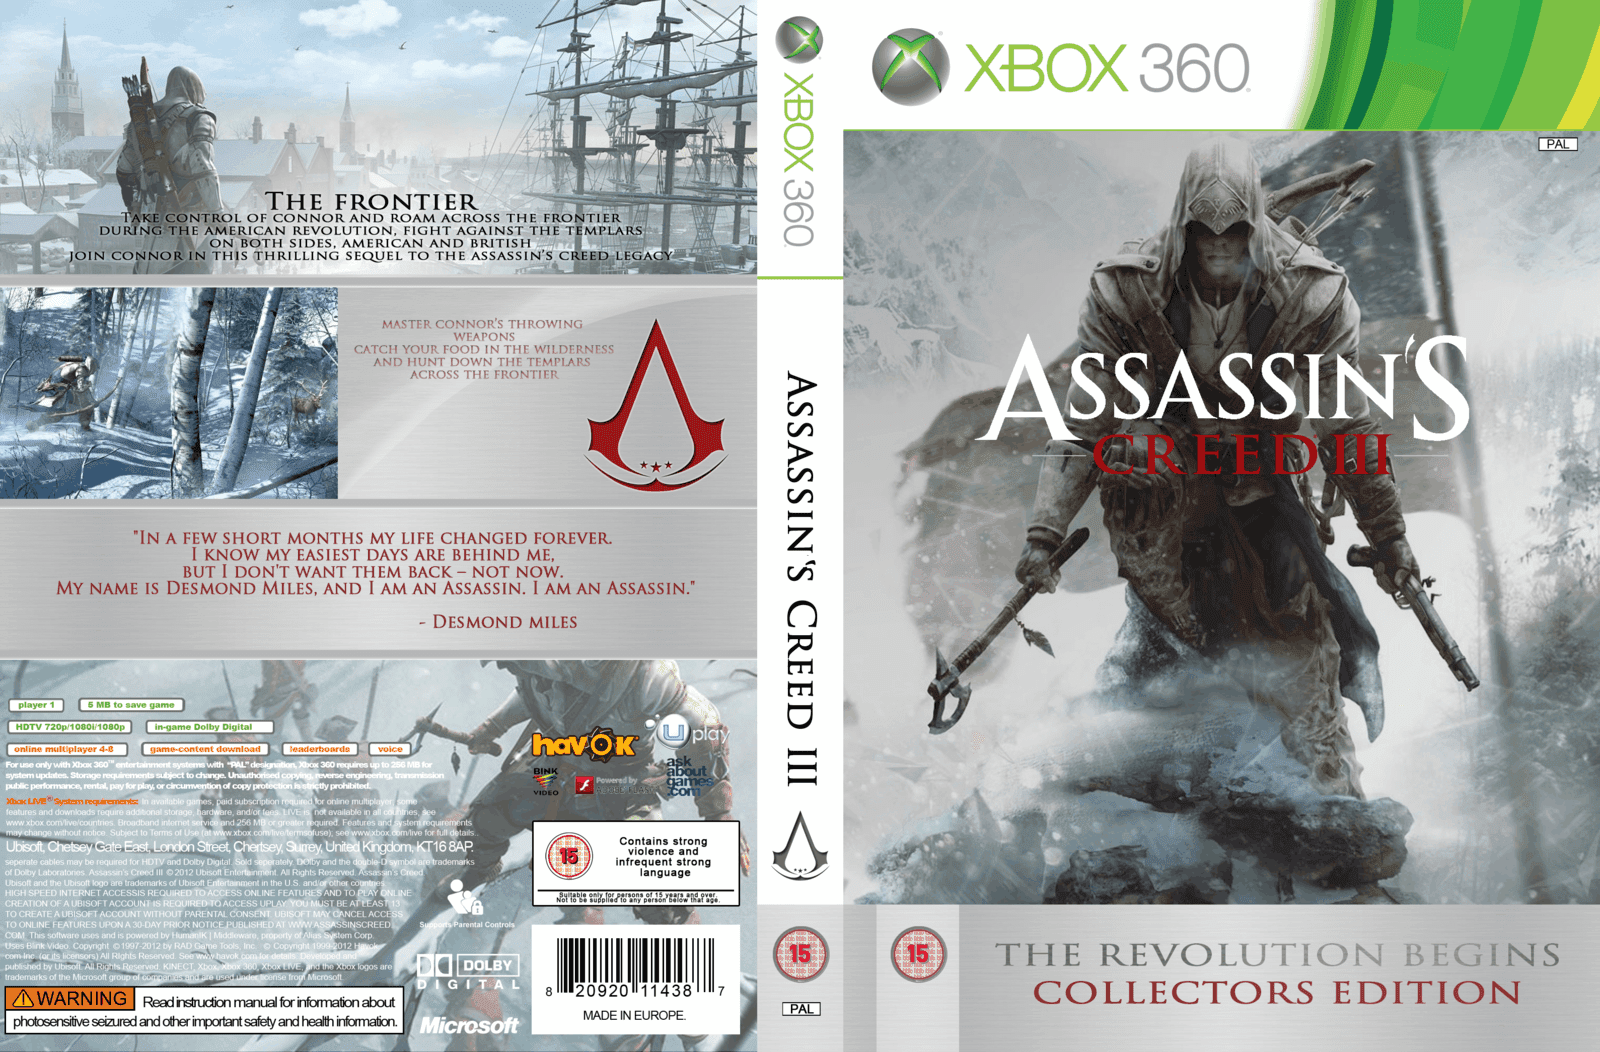 Capa Assassins Creed III Collectors Edition Xbox 360